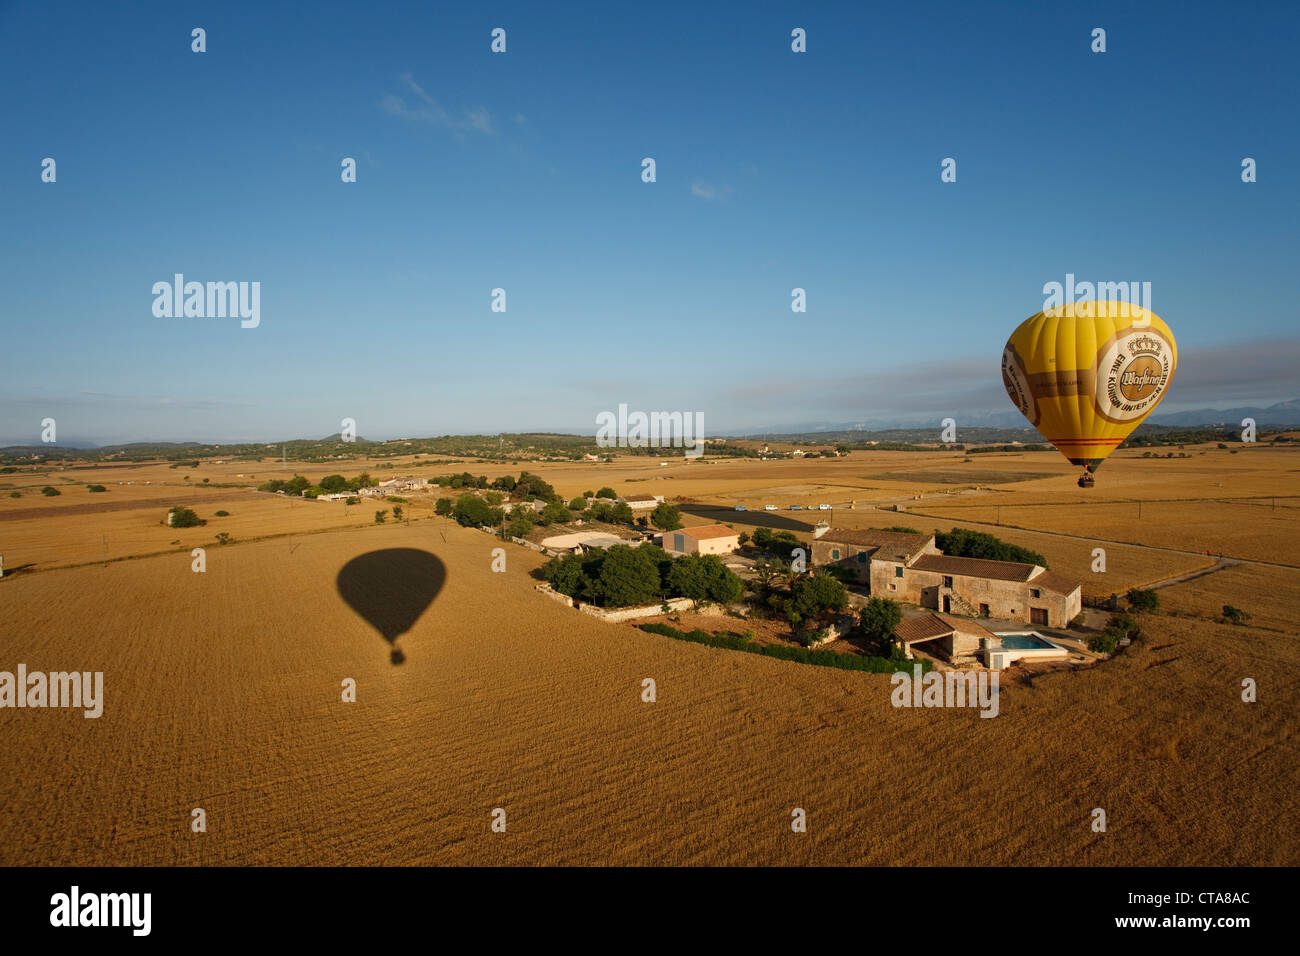 Hot air balloon flying over fields and a farm, plain Es Pla, Mallorca, Balearic Islands, Spain, Europe Stock Photo